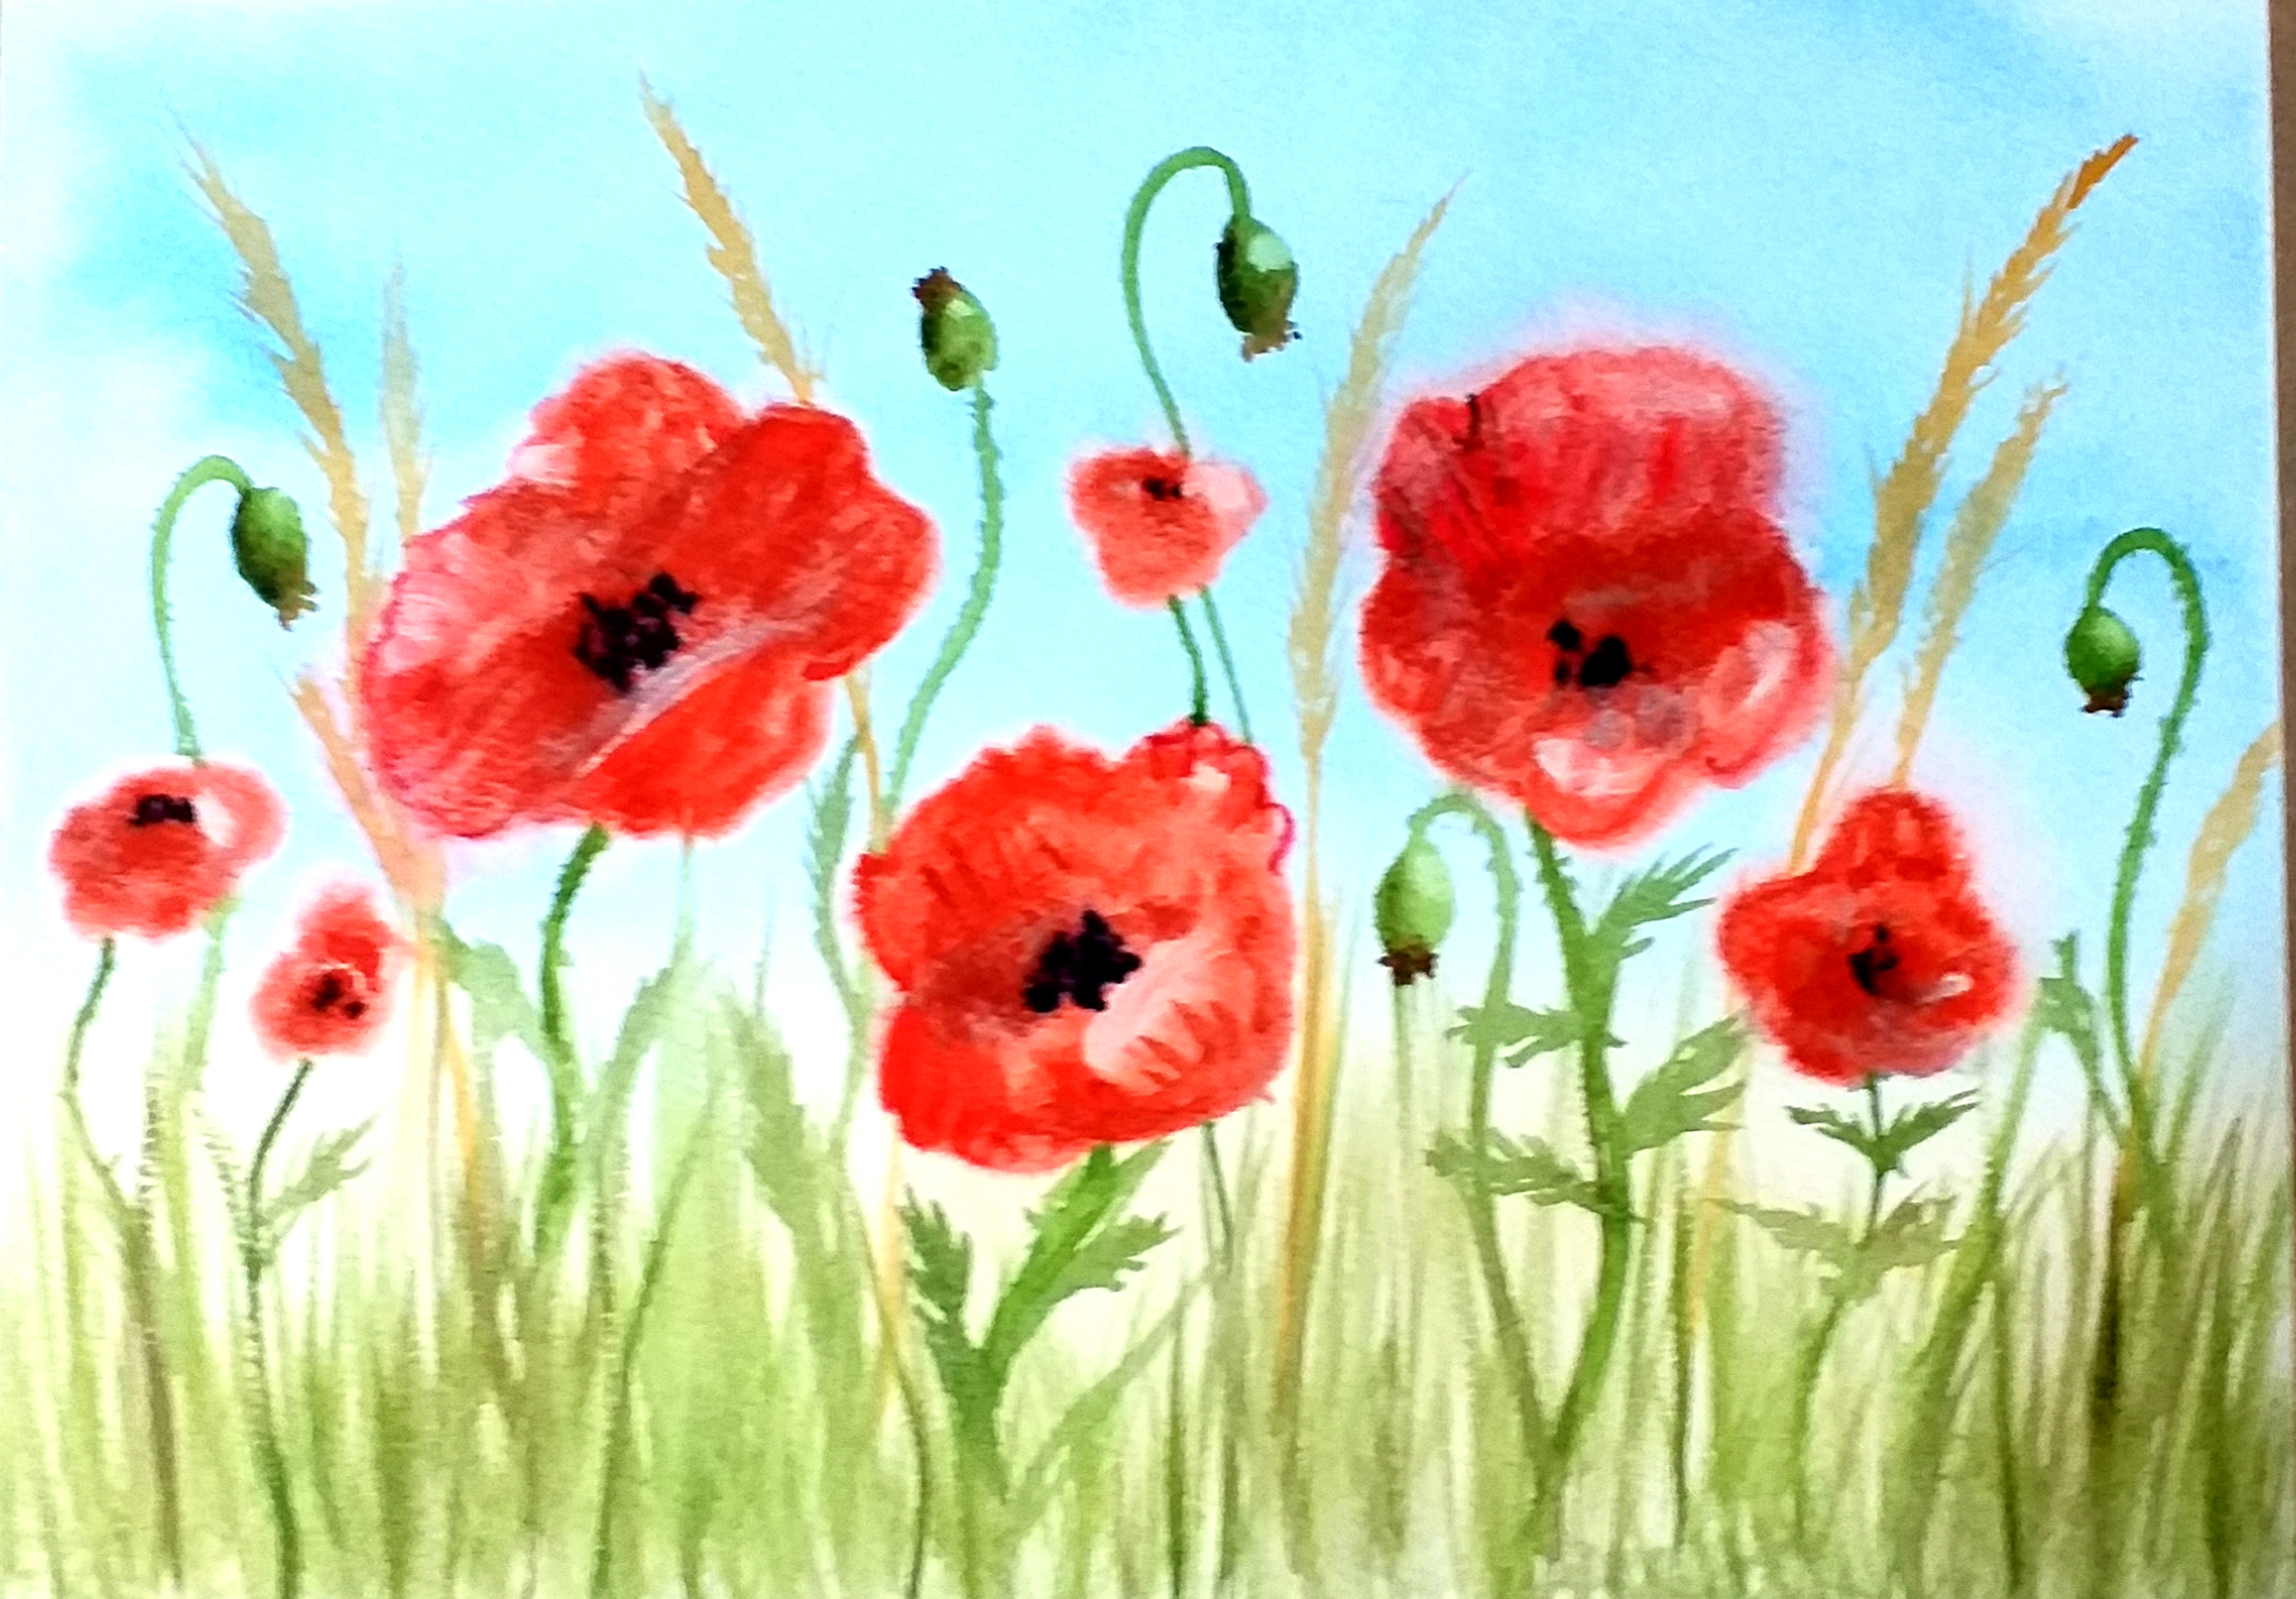 Watercolour course for absolute beginners in Kidderminster Worcestershire